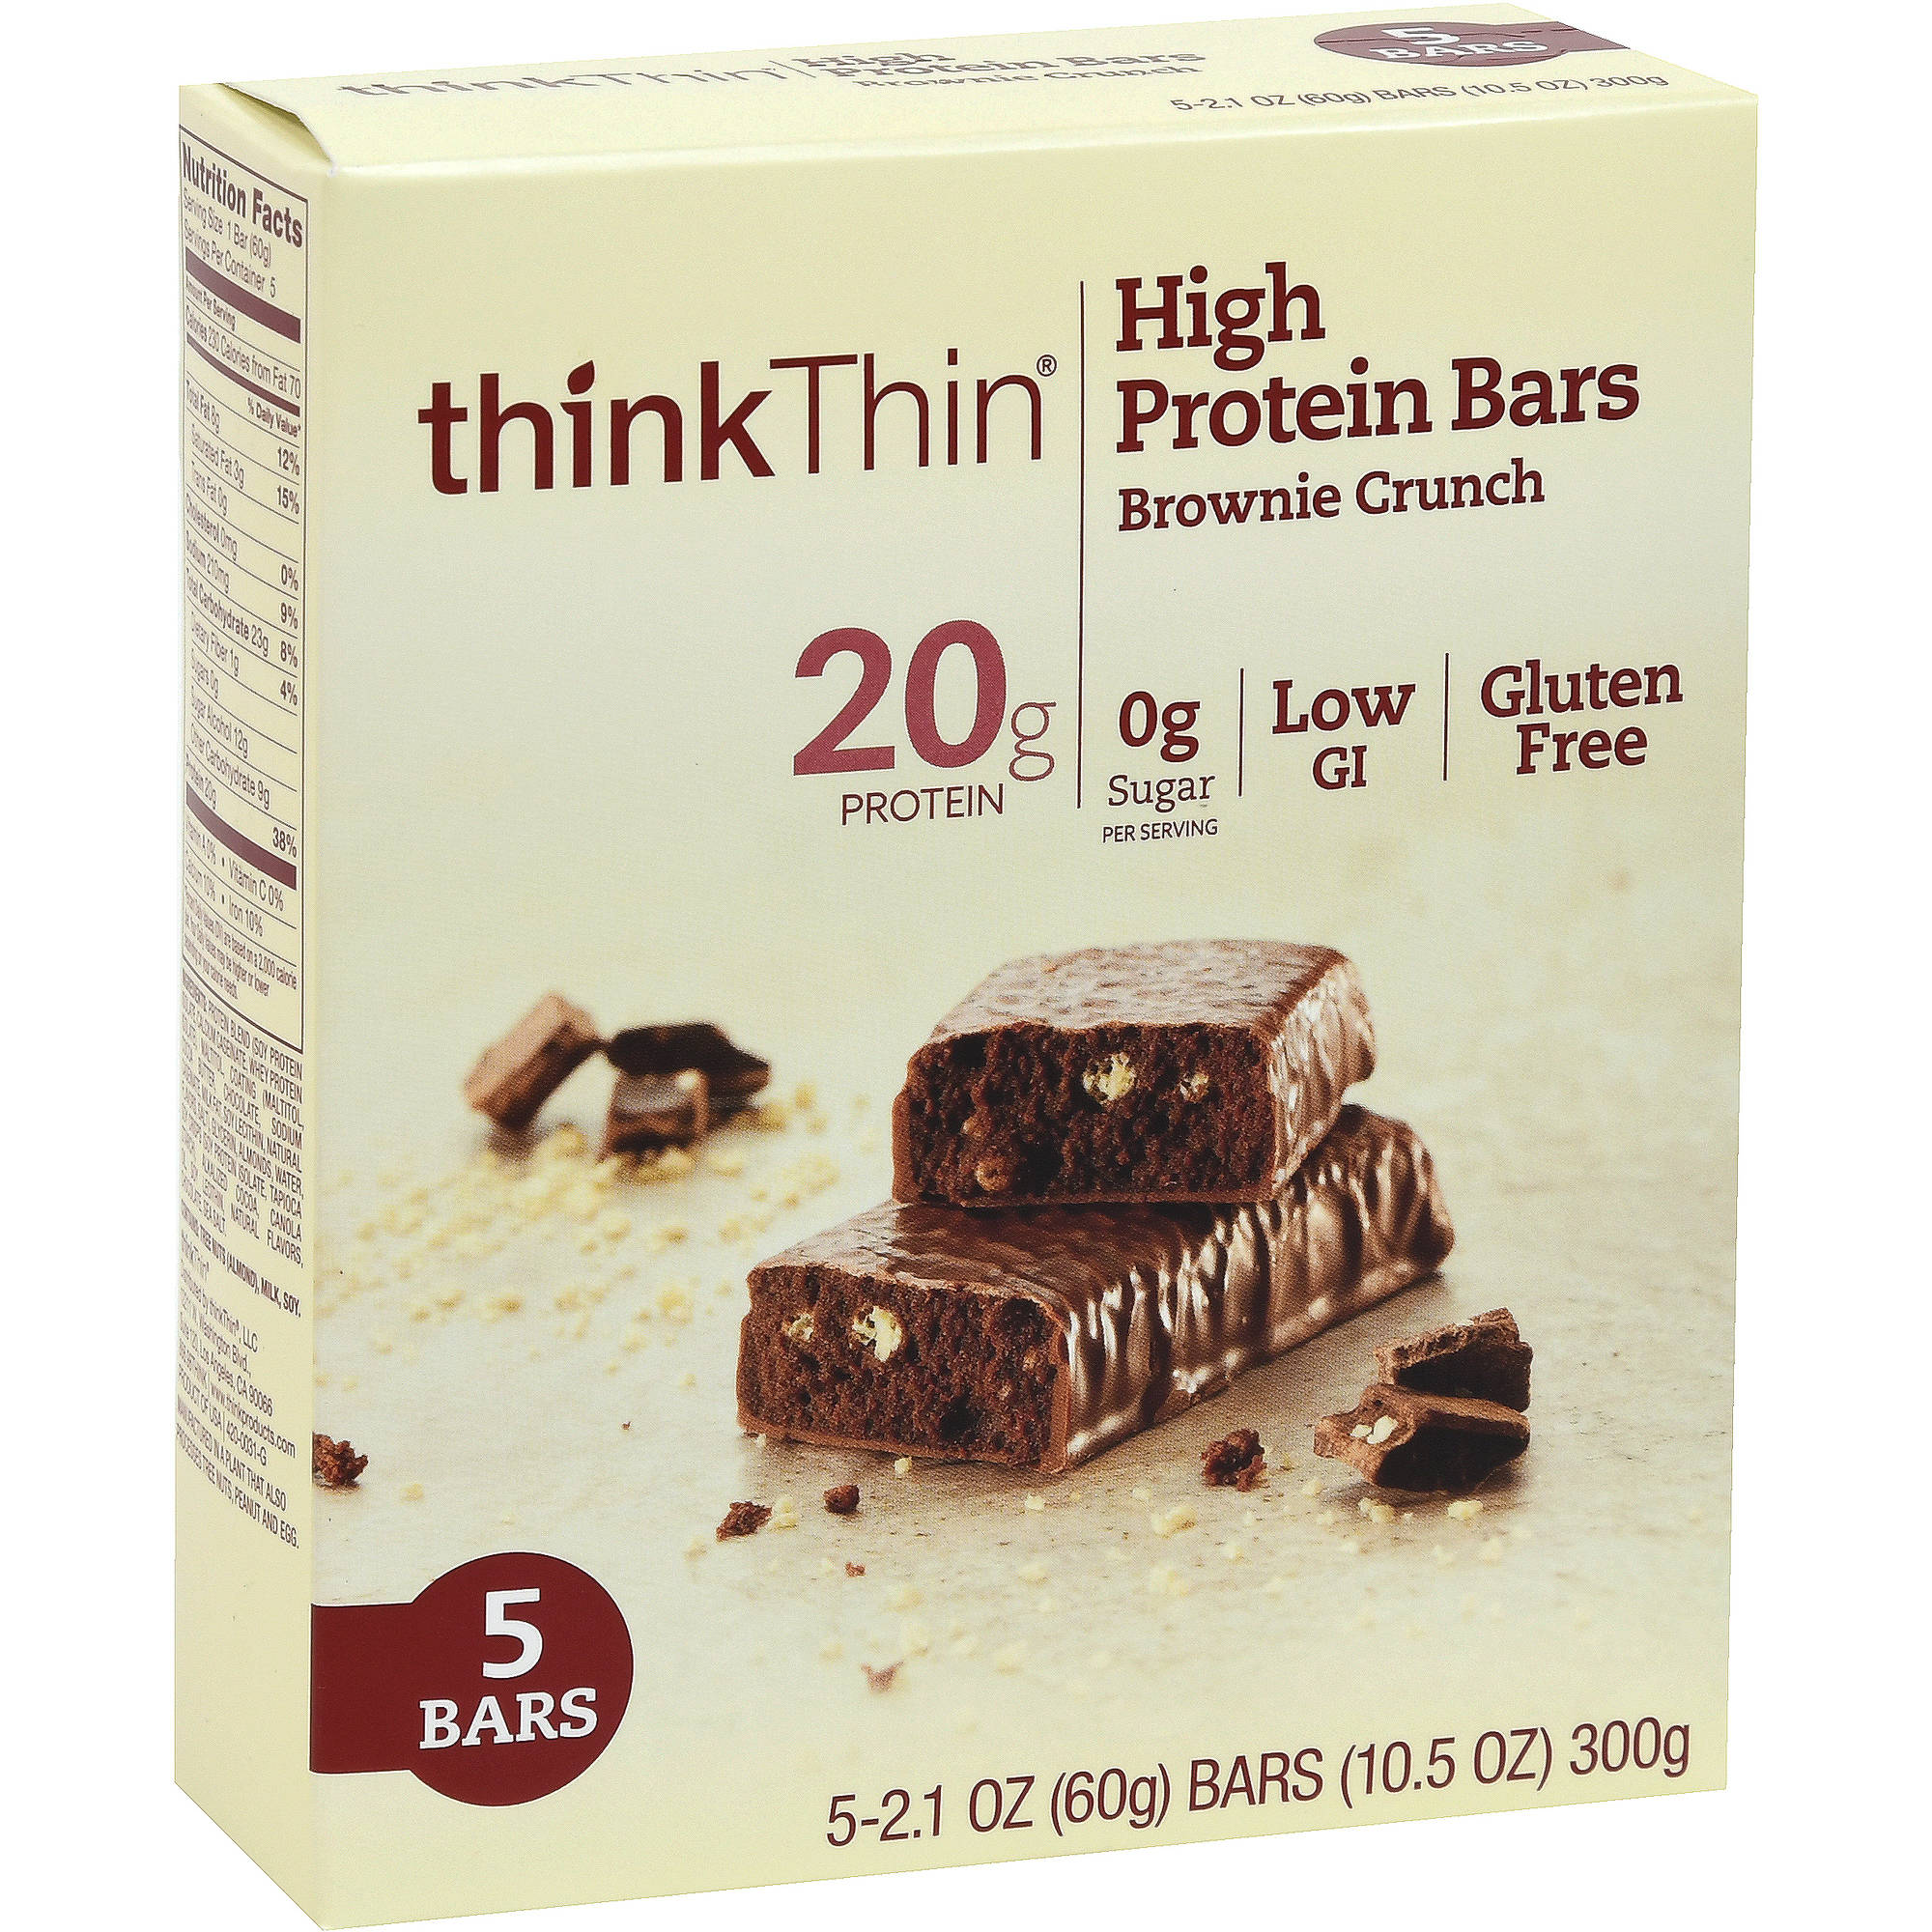 thinkThin Brownie Crunch High Protein Bars, 5 count, 10.5 oz